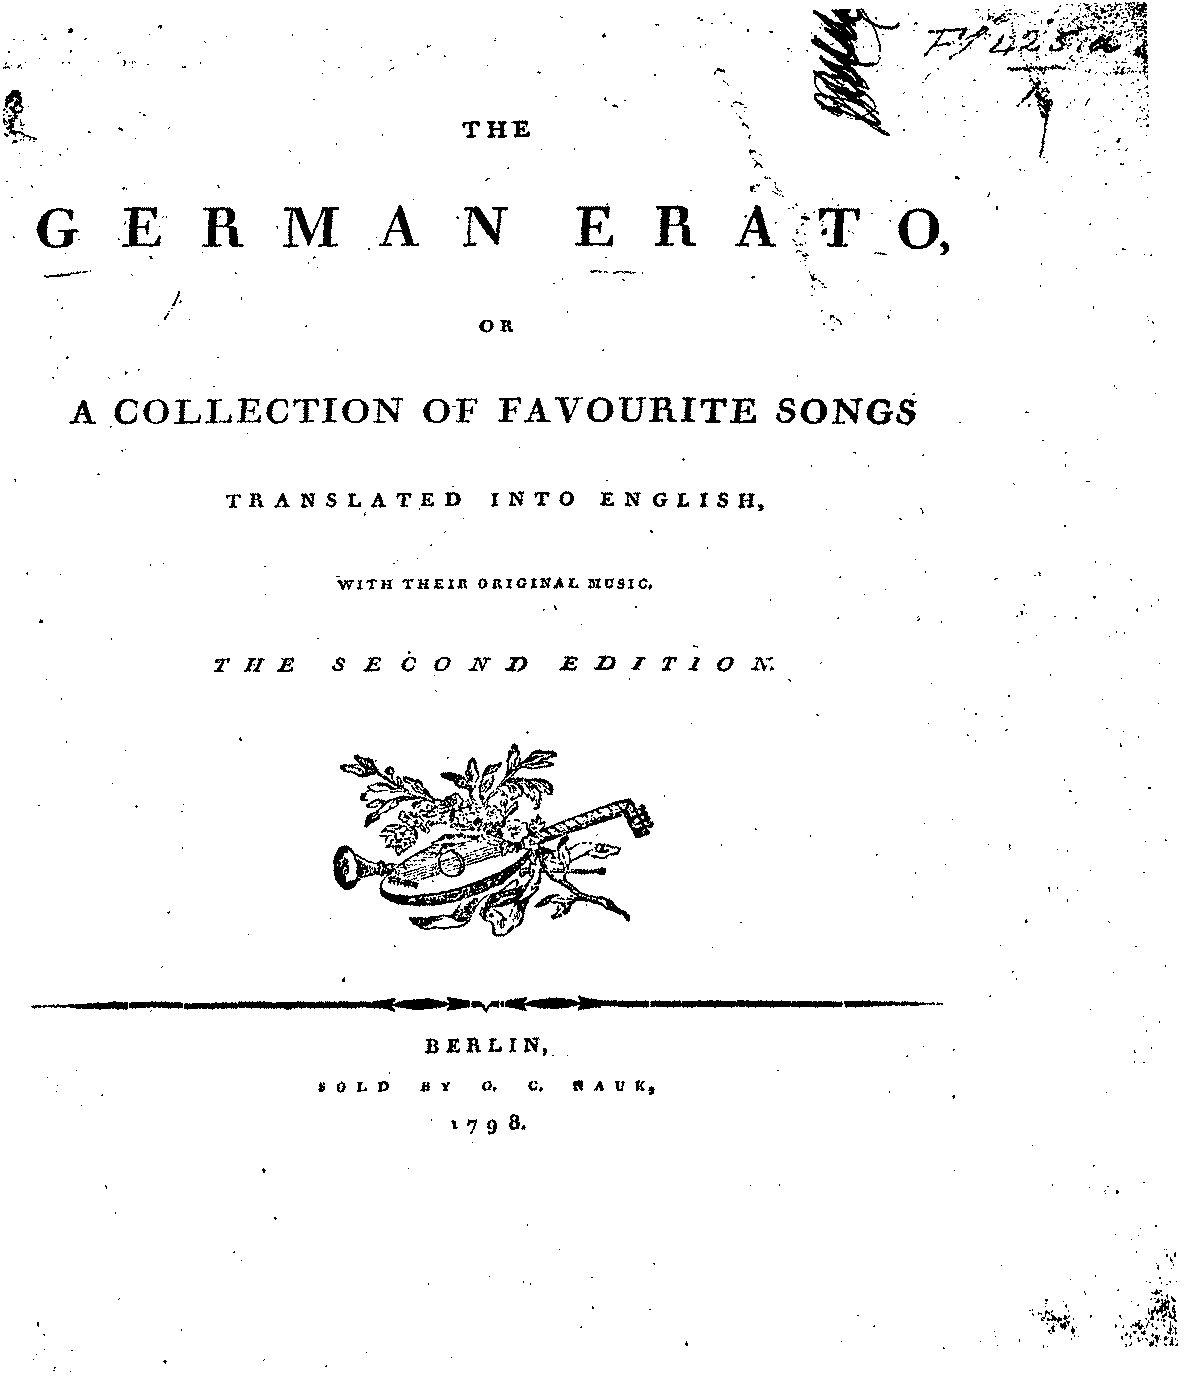 PMLP141012-The German Erato 1798.pdf